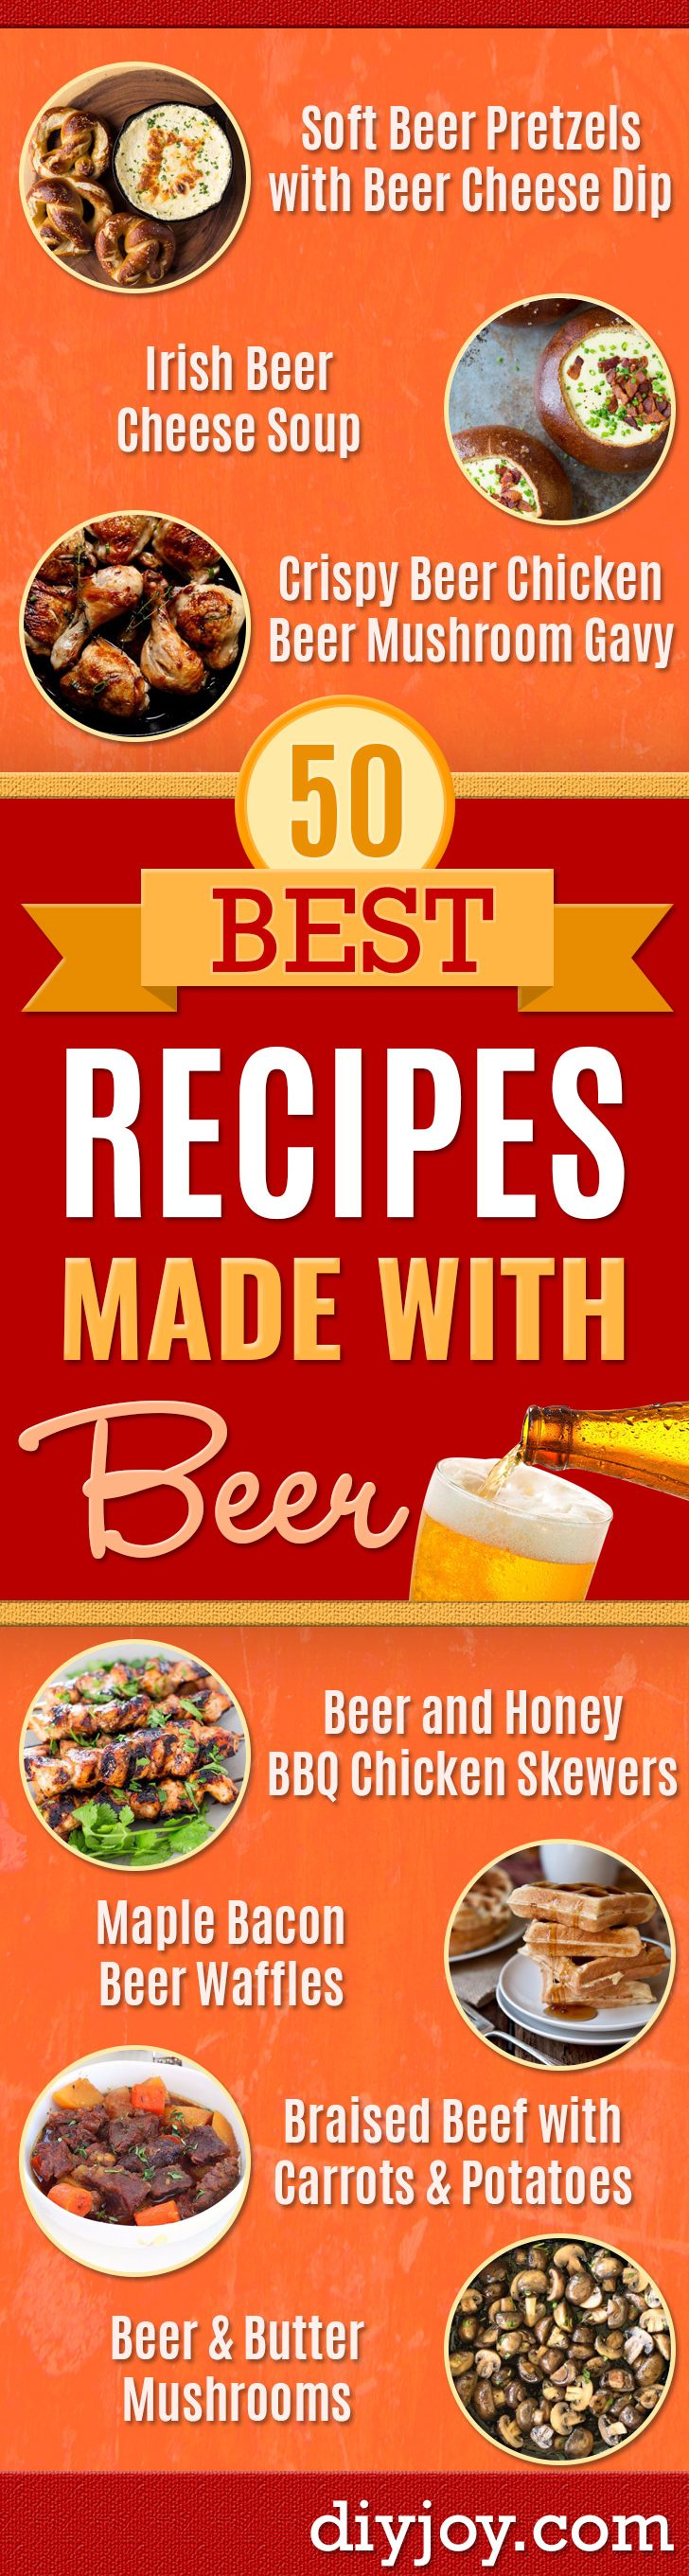 33 Best Recipes Made With Beer